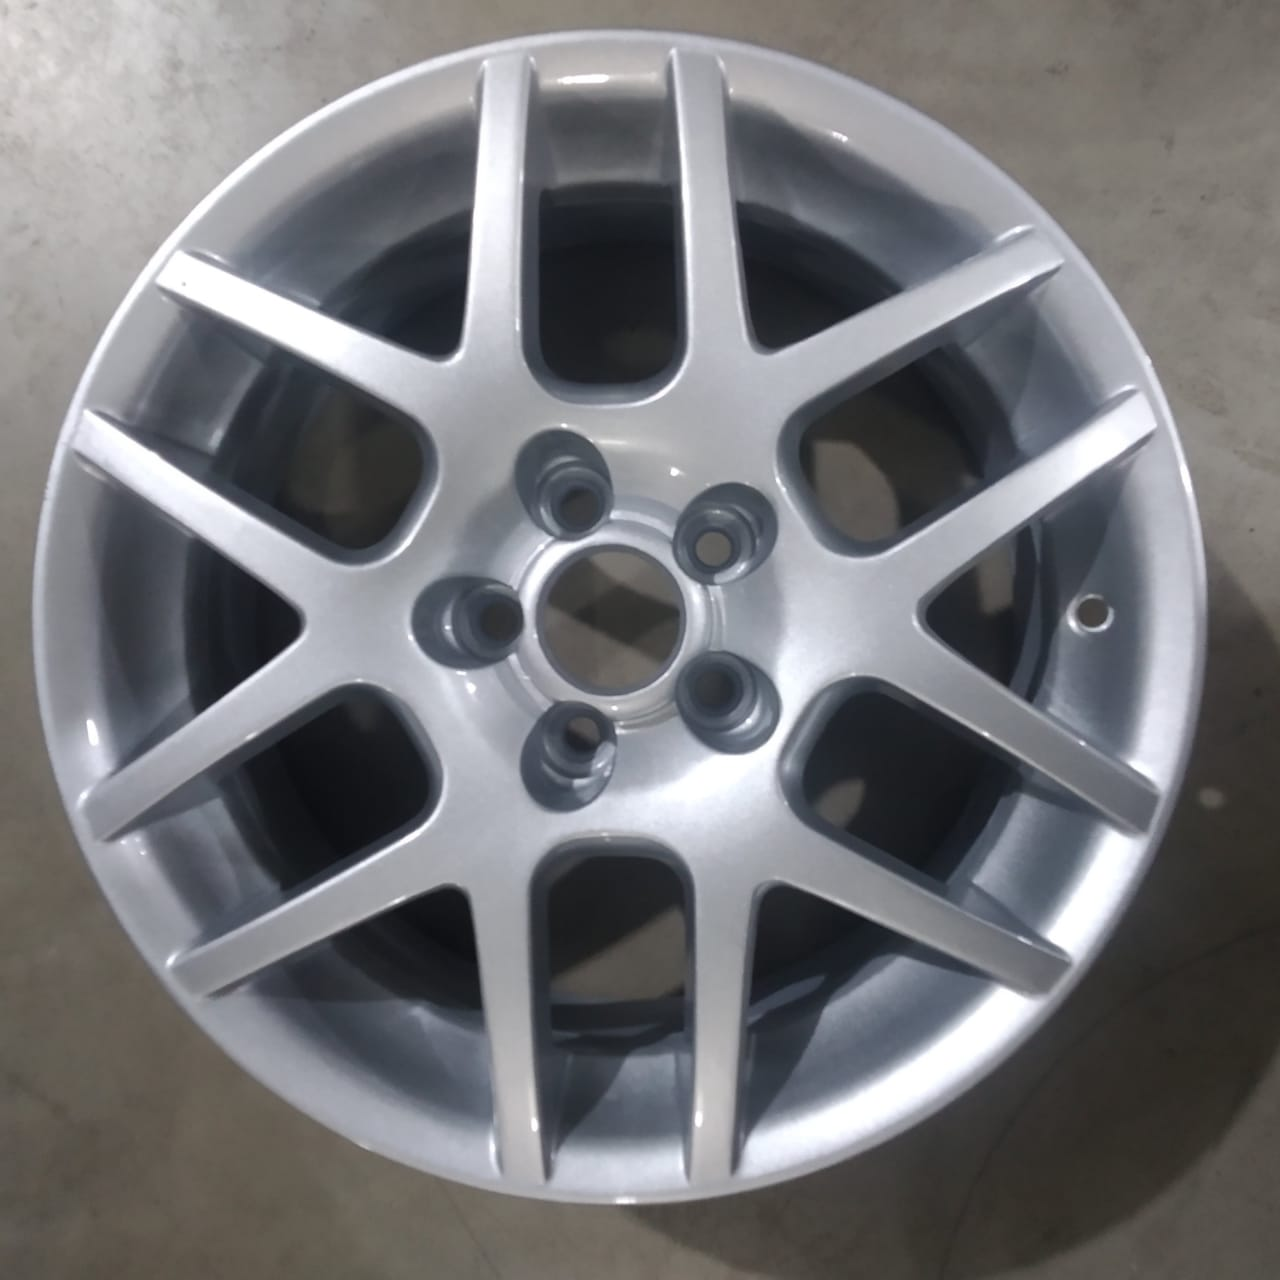 RODA ARO 16 - REPLICA ORIGINAL GOLF GTI - 5X100